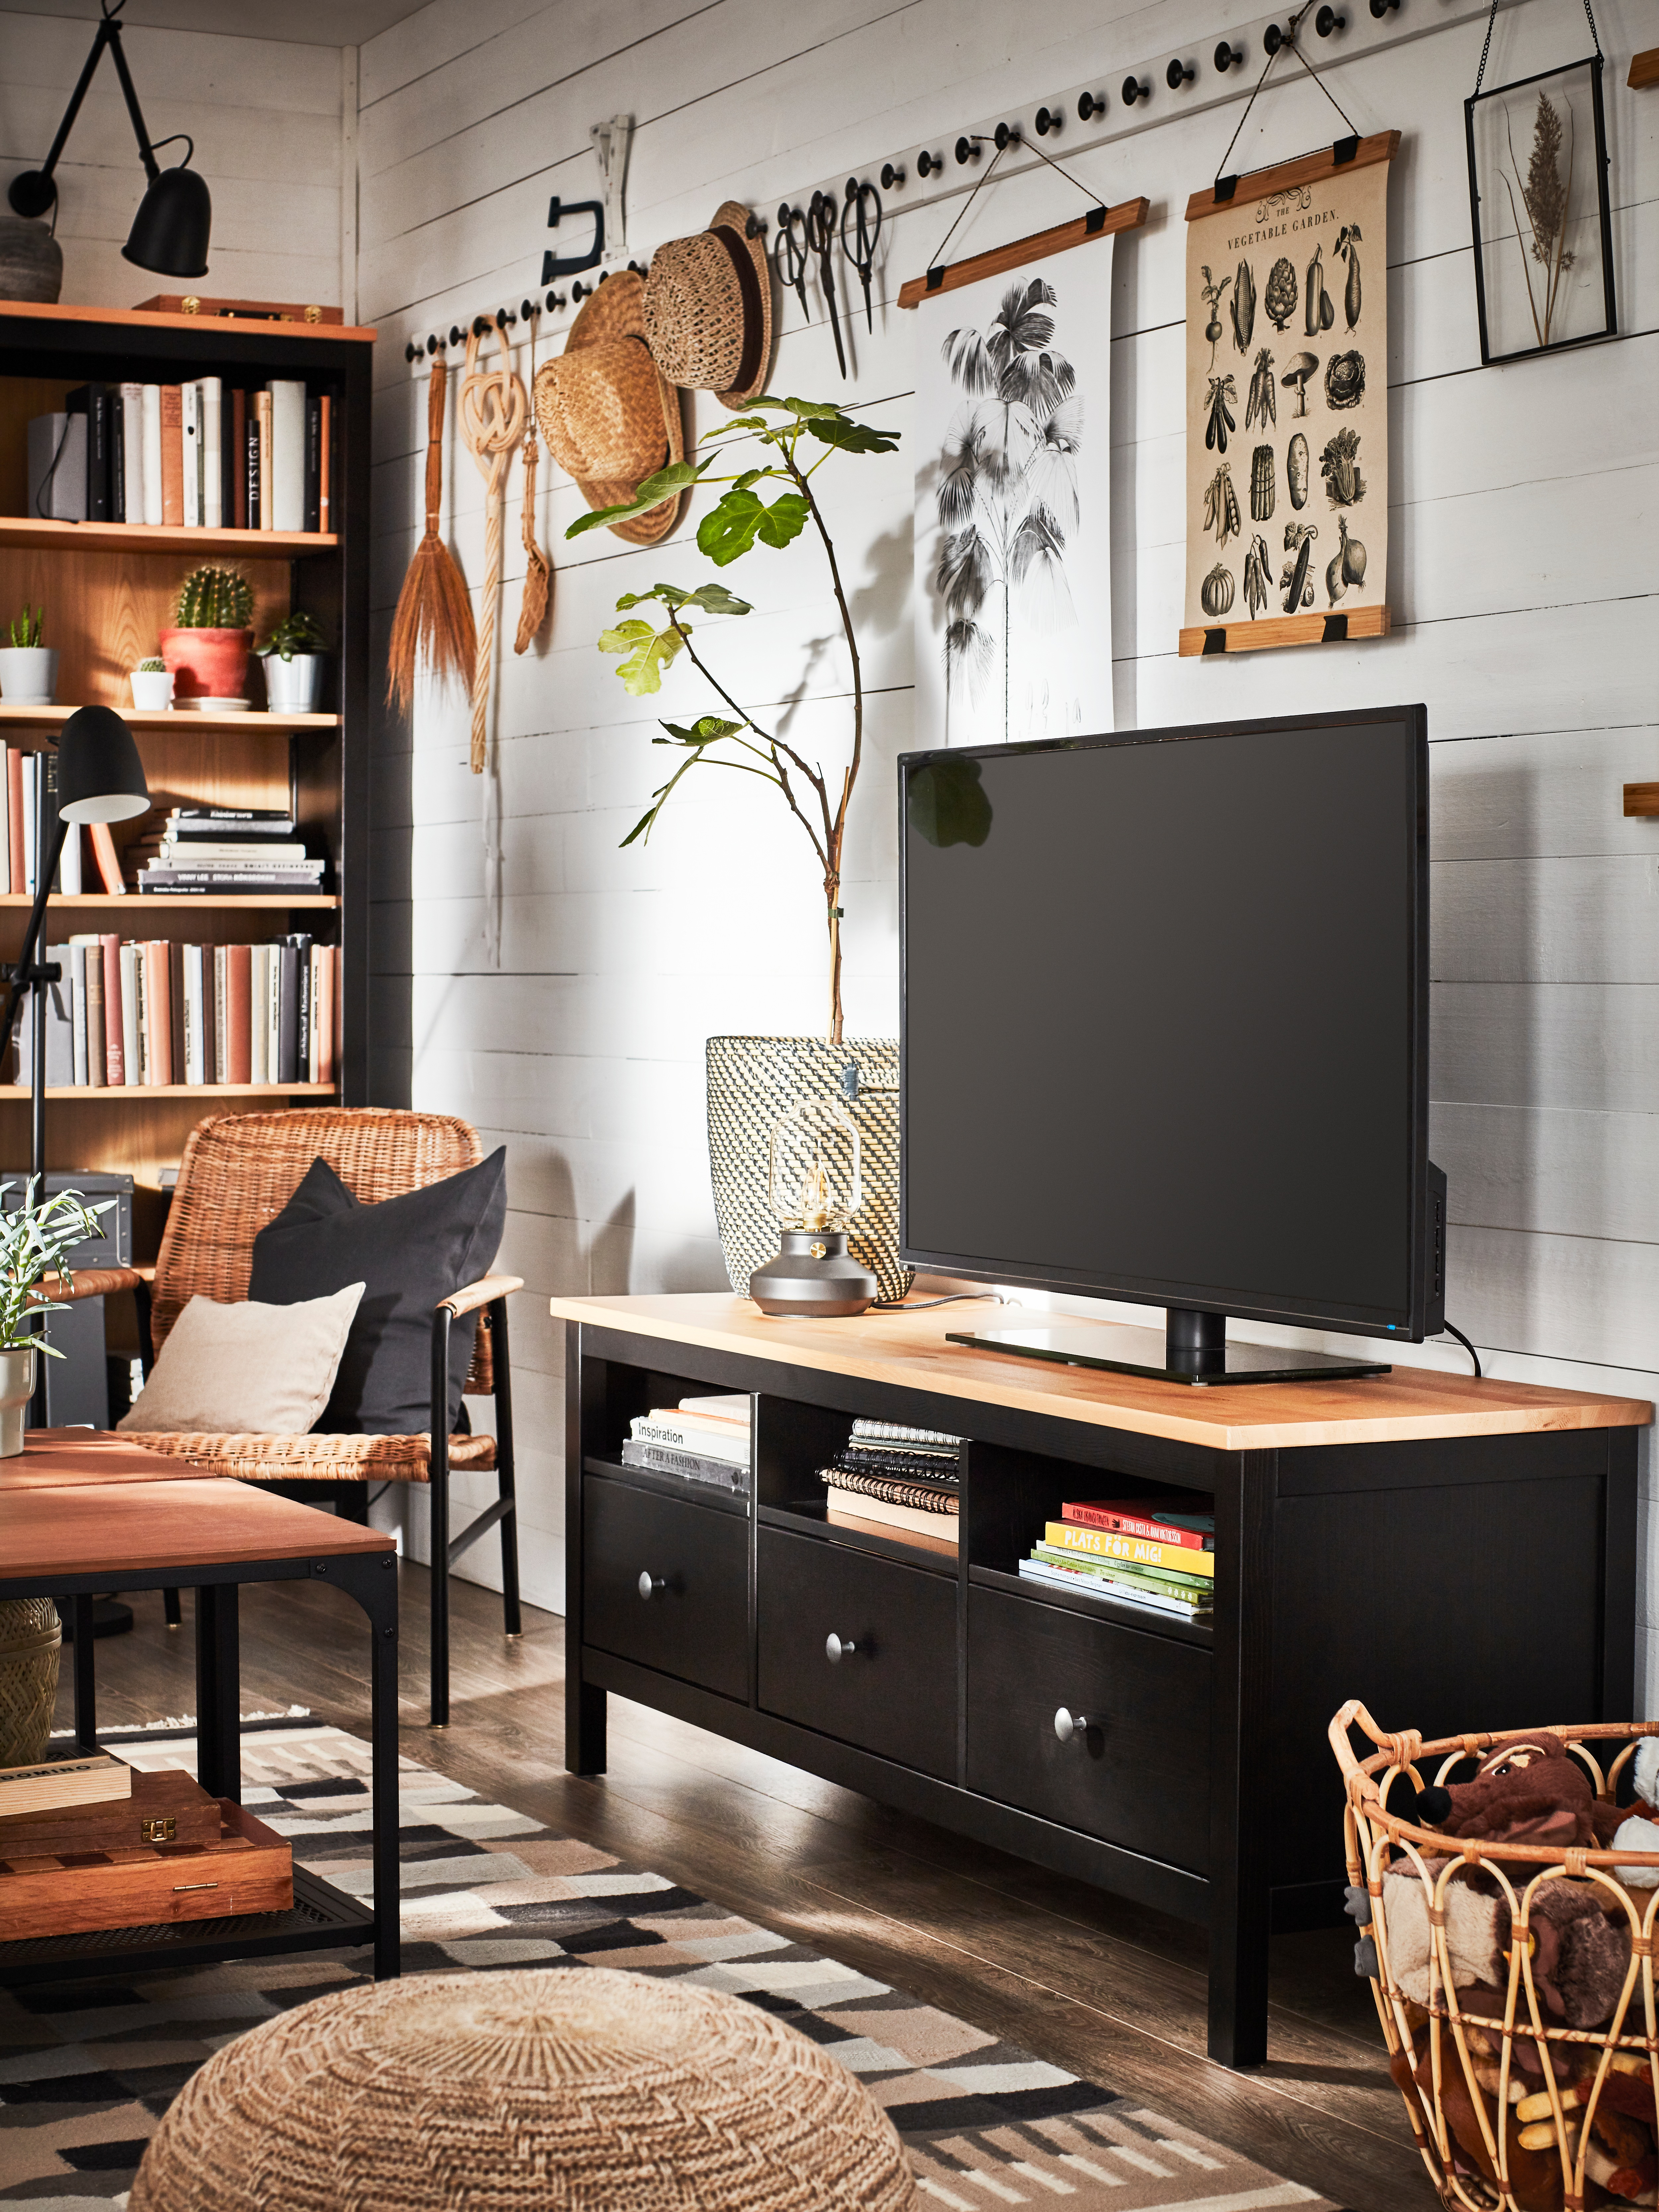 A black-brown/light brown HEMNES TV bench has a flatscreen TV on top, against a panelled wall with traditional decor.